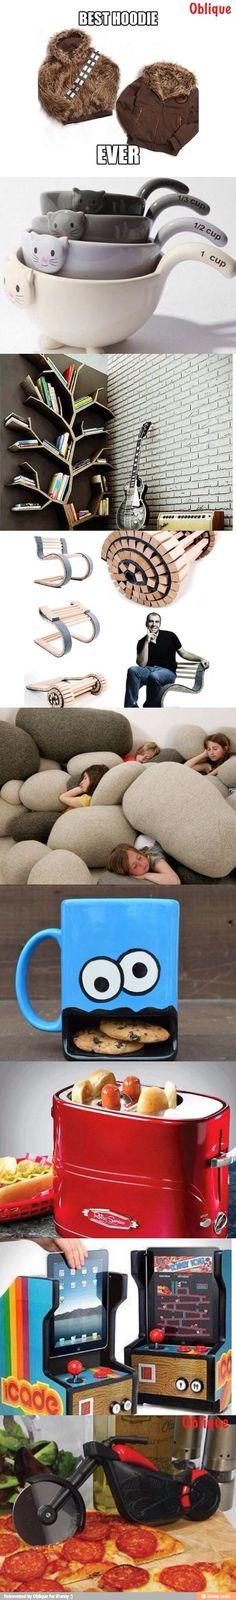 Awesome inventions.. i need every single one